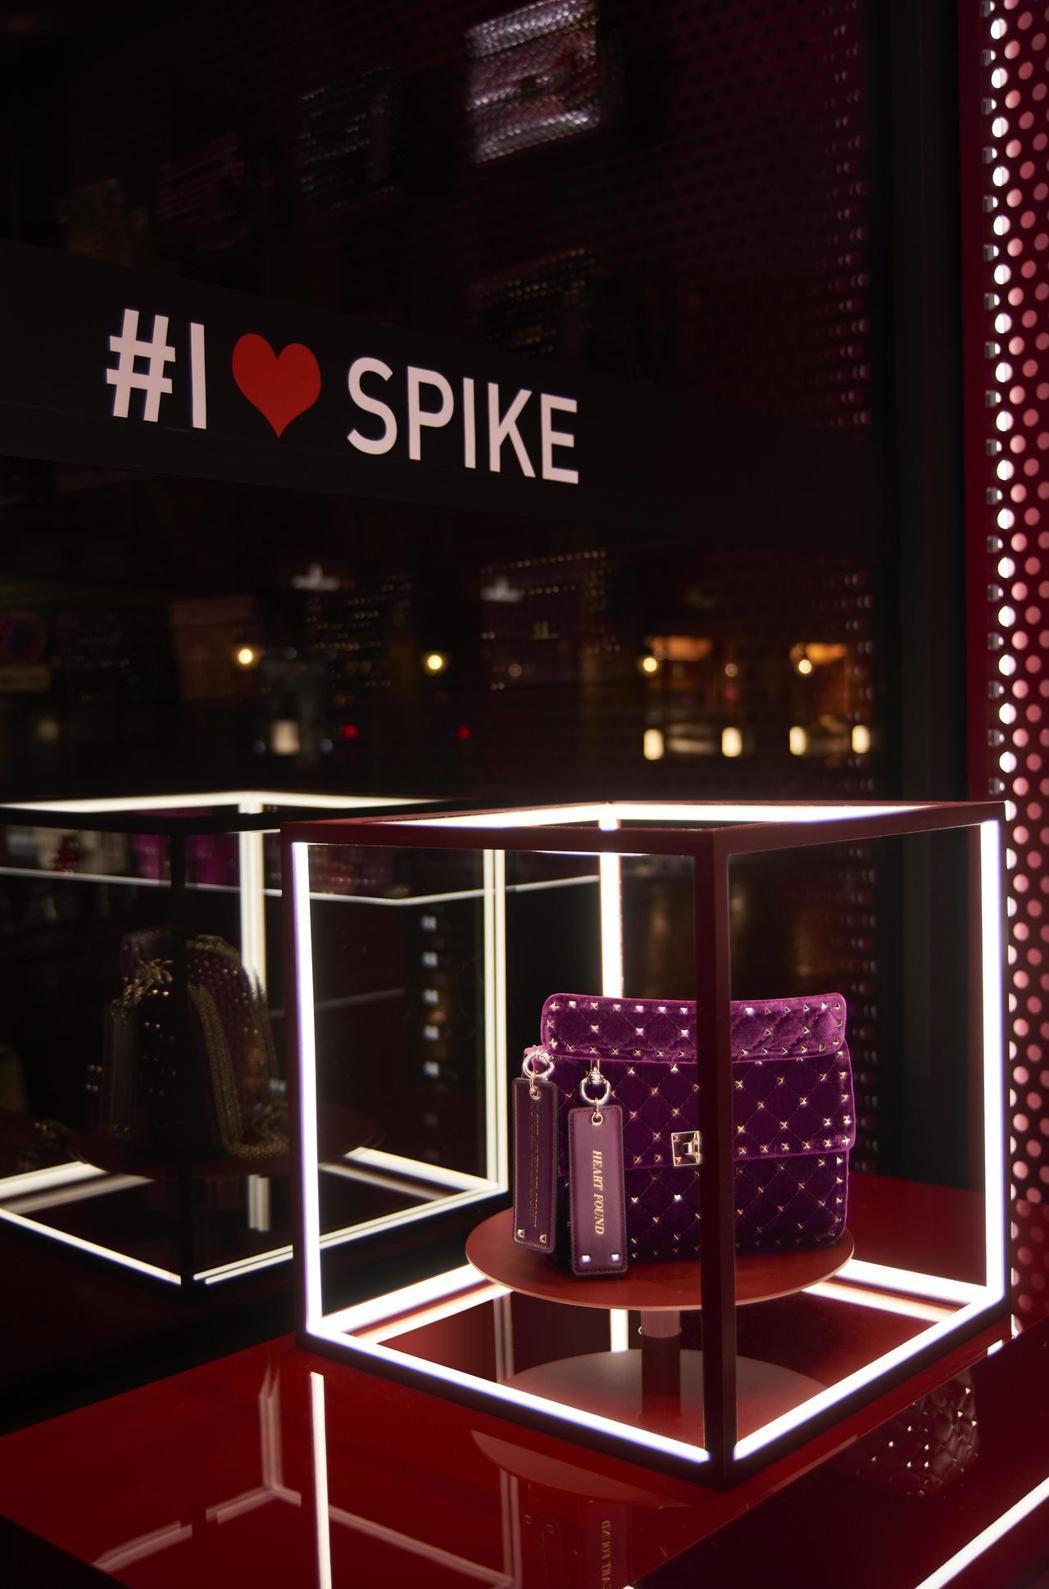 「I LOVE SPIKE」Hotel Costes期間限定店。圖/Valent...